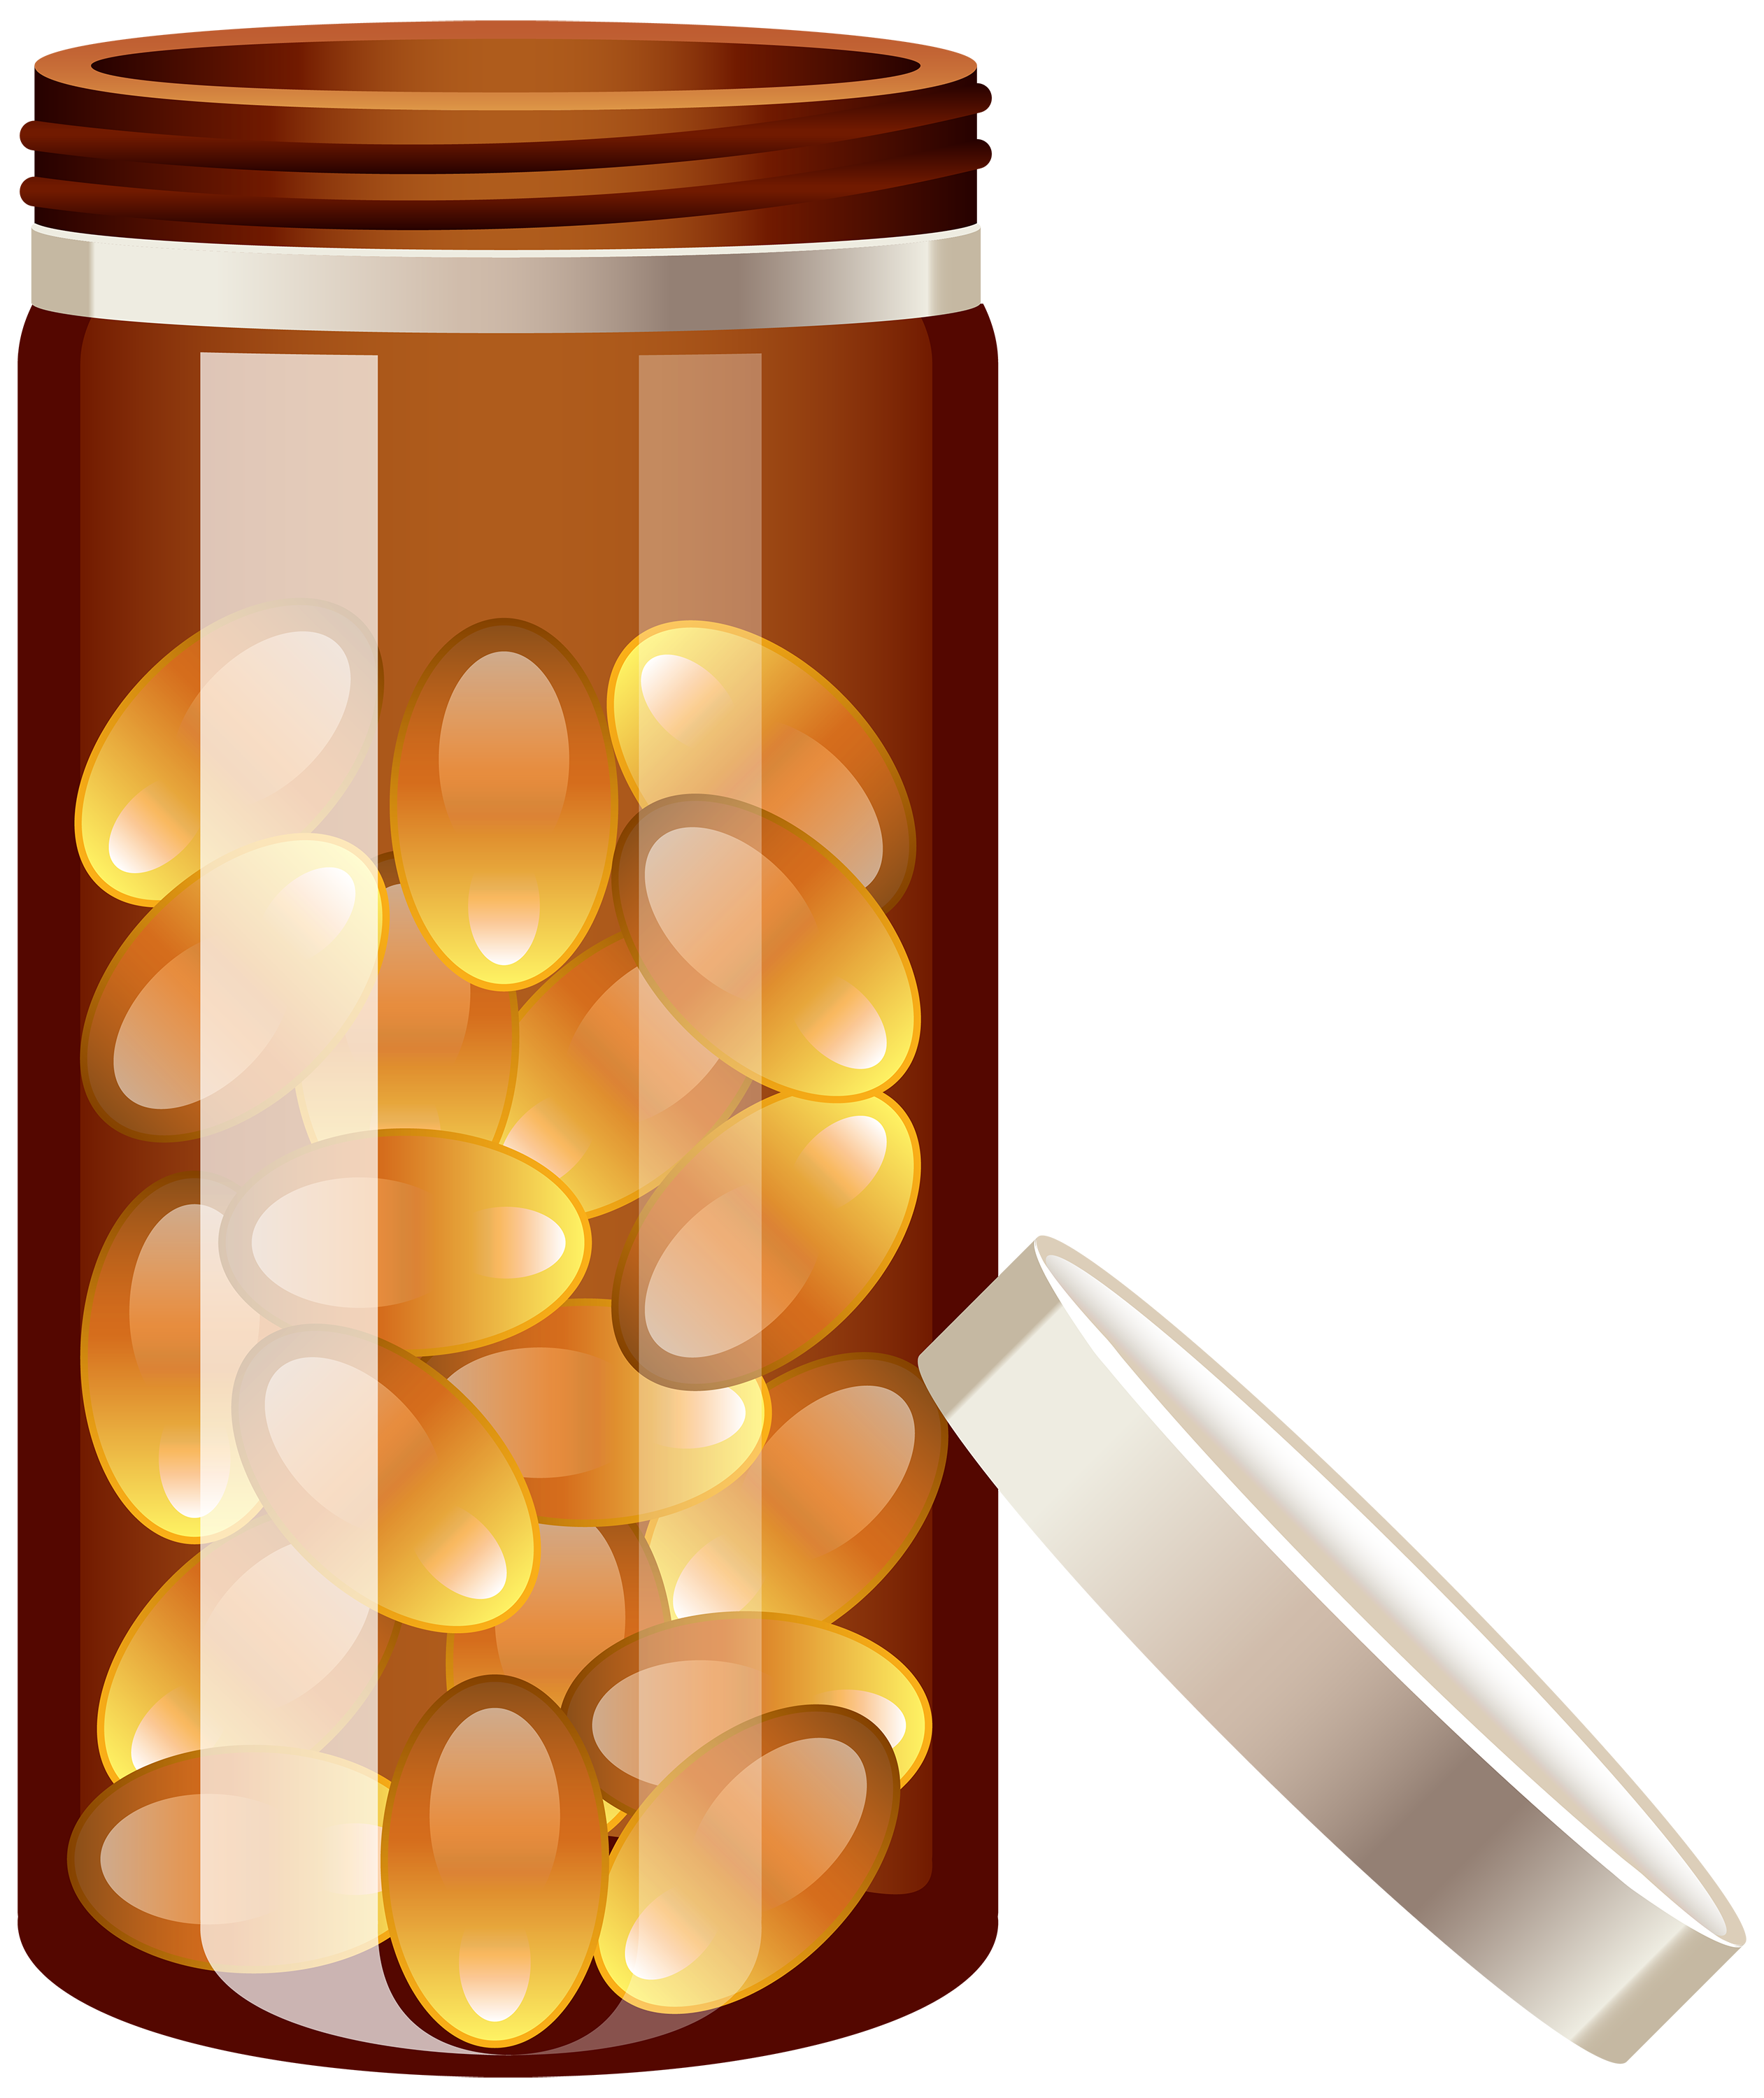 Full clipart prescription bottle. Pill png best web